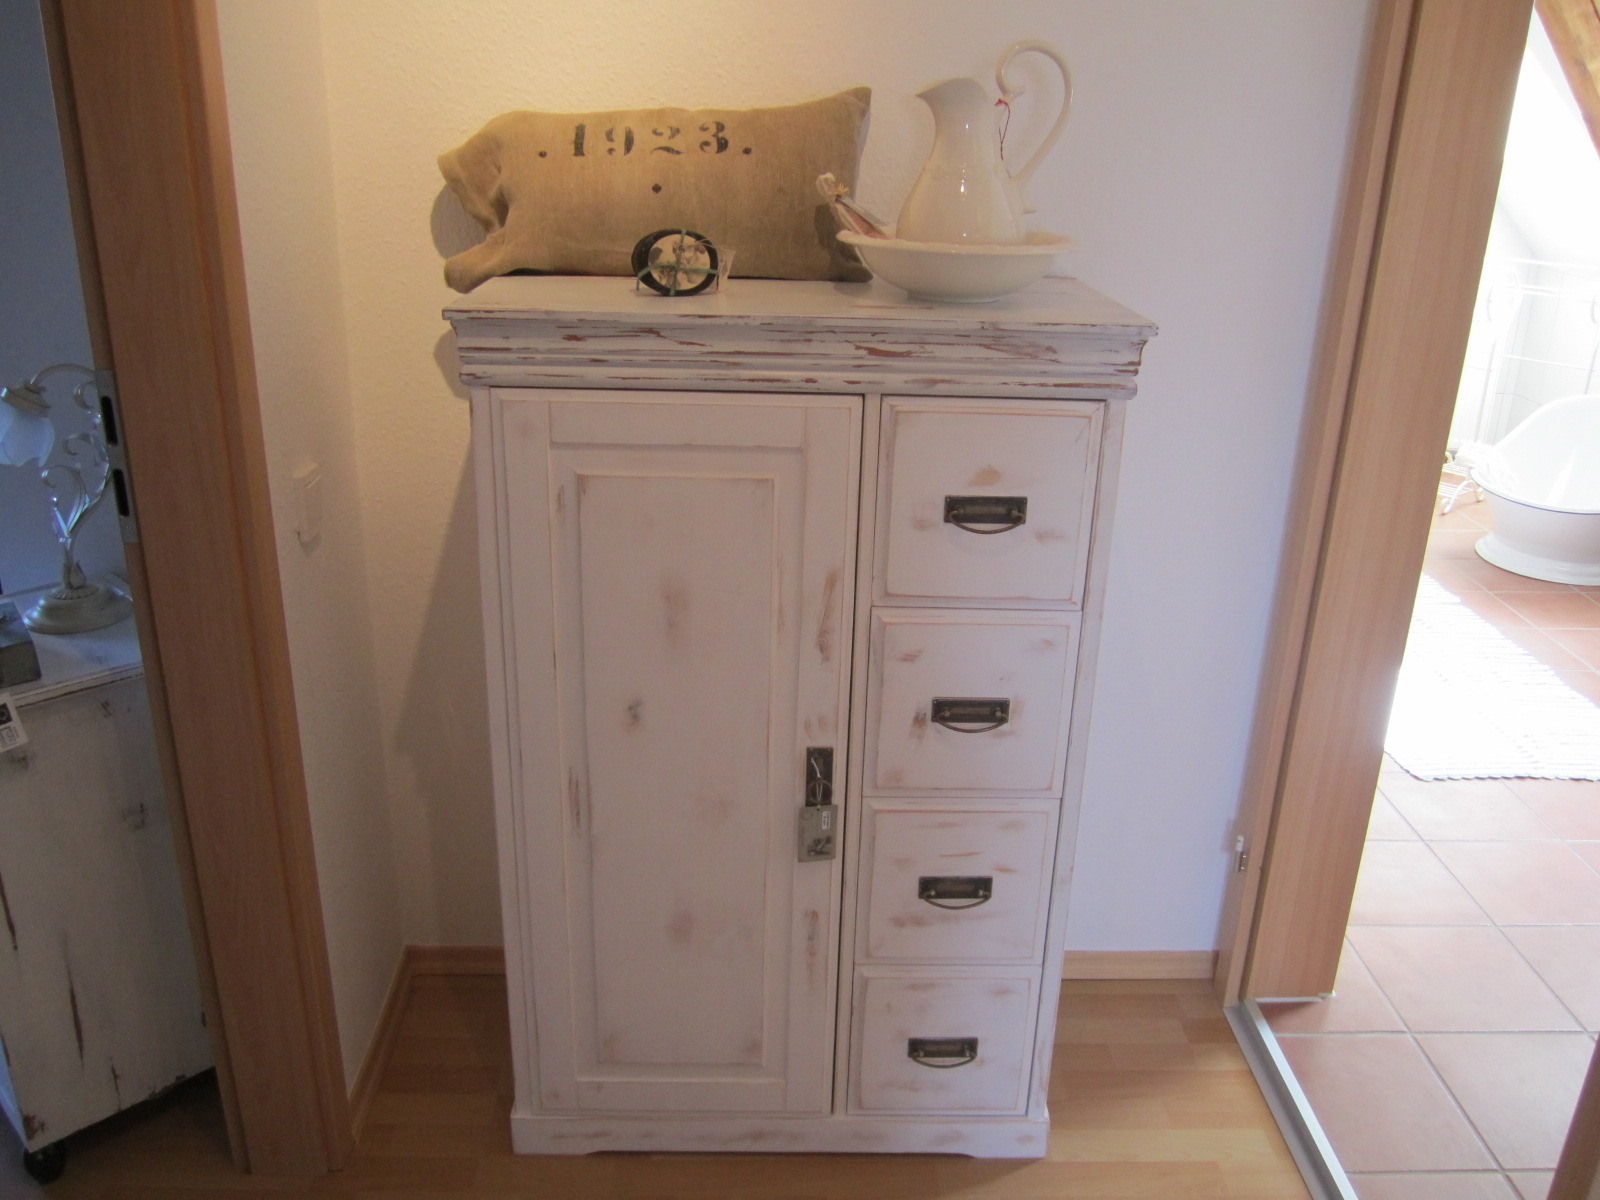 shabby chic und antik by conny samstag s von 14 18 uhr kaffe und kuchen. Black Bedroom Furniture Sets. Home Design Ideas